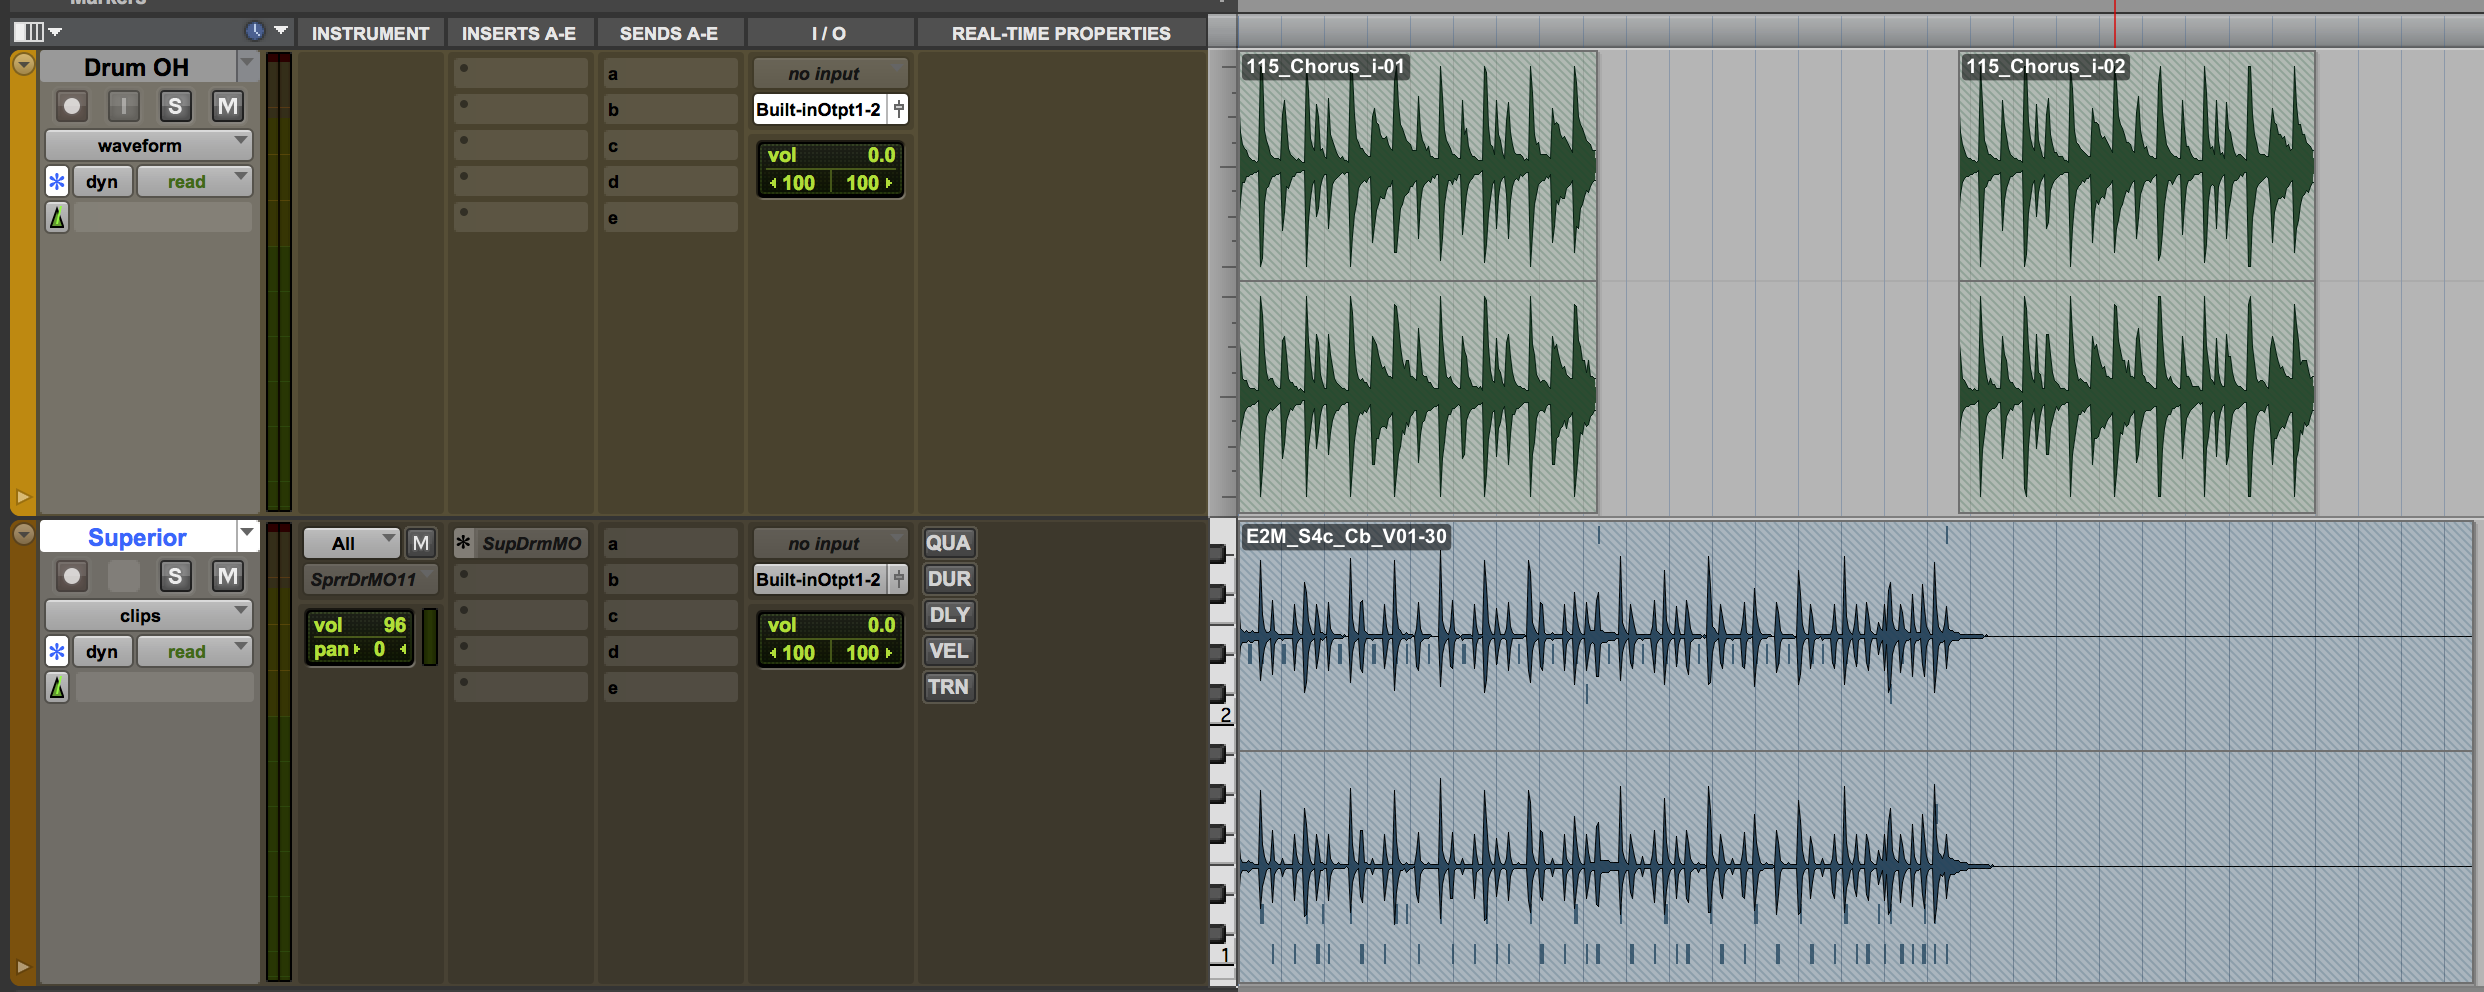 The session in Pro Tools 12.4